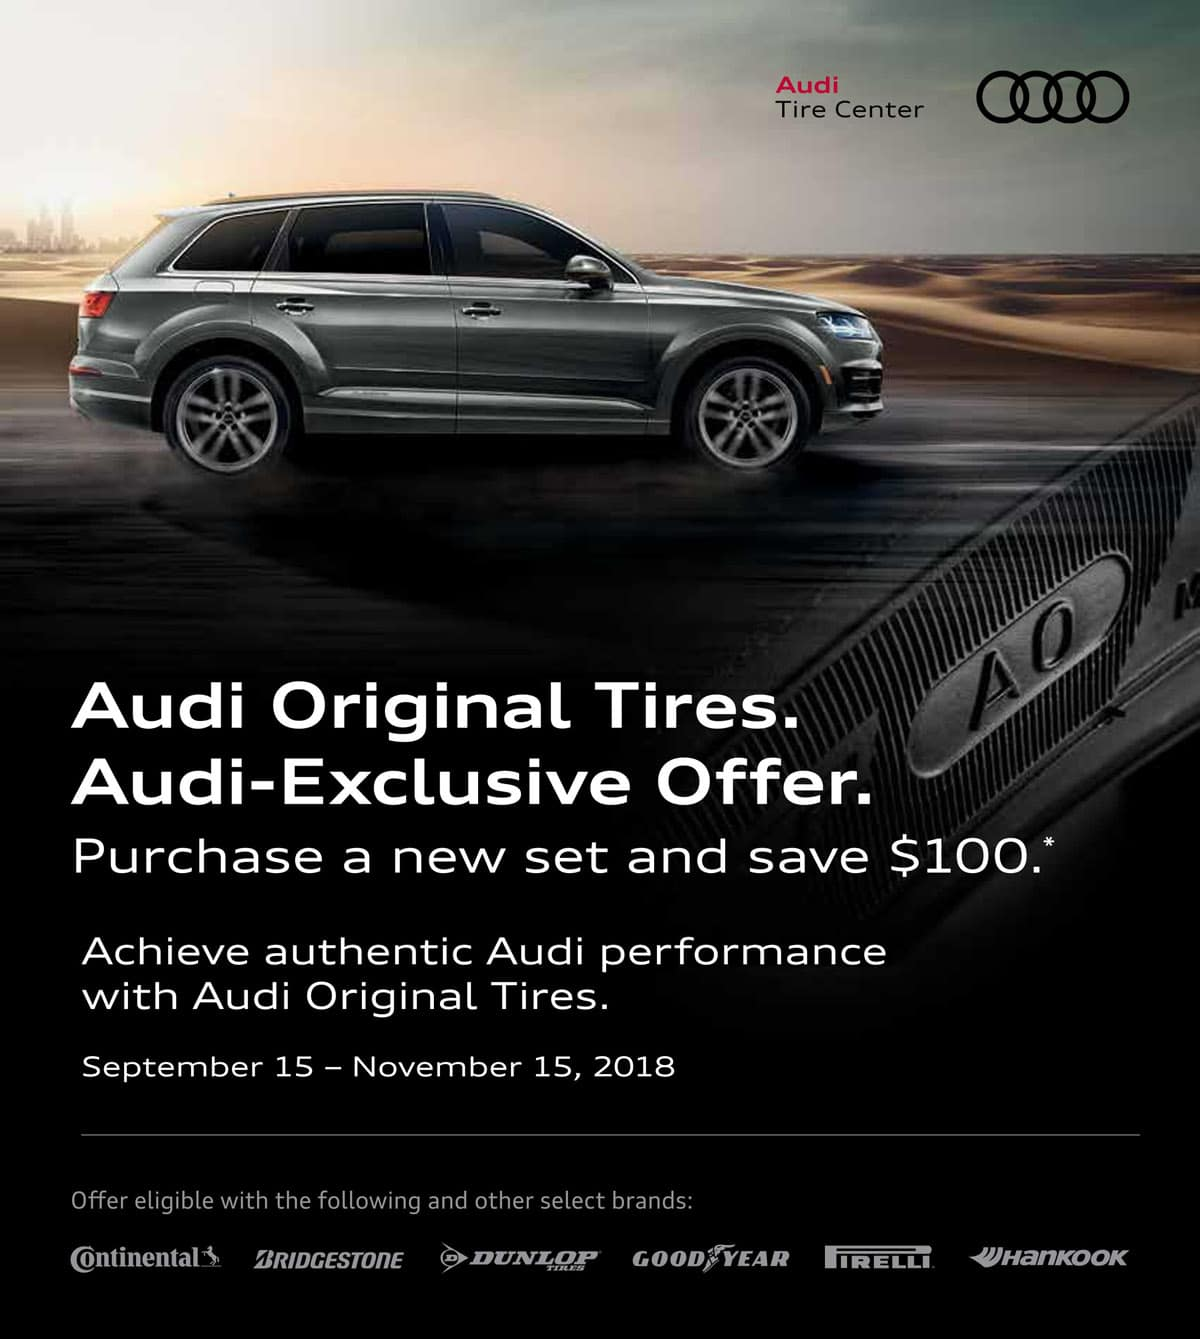 Porsche And Audi Service Specials In Denver, Lakewood, And